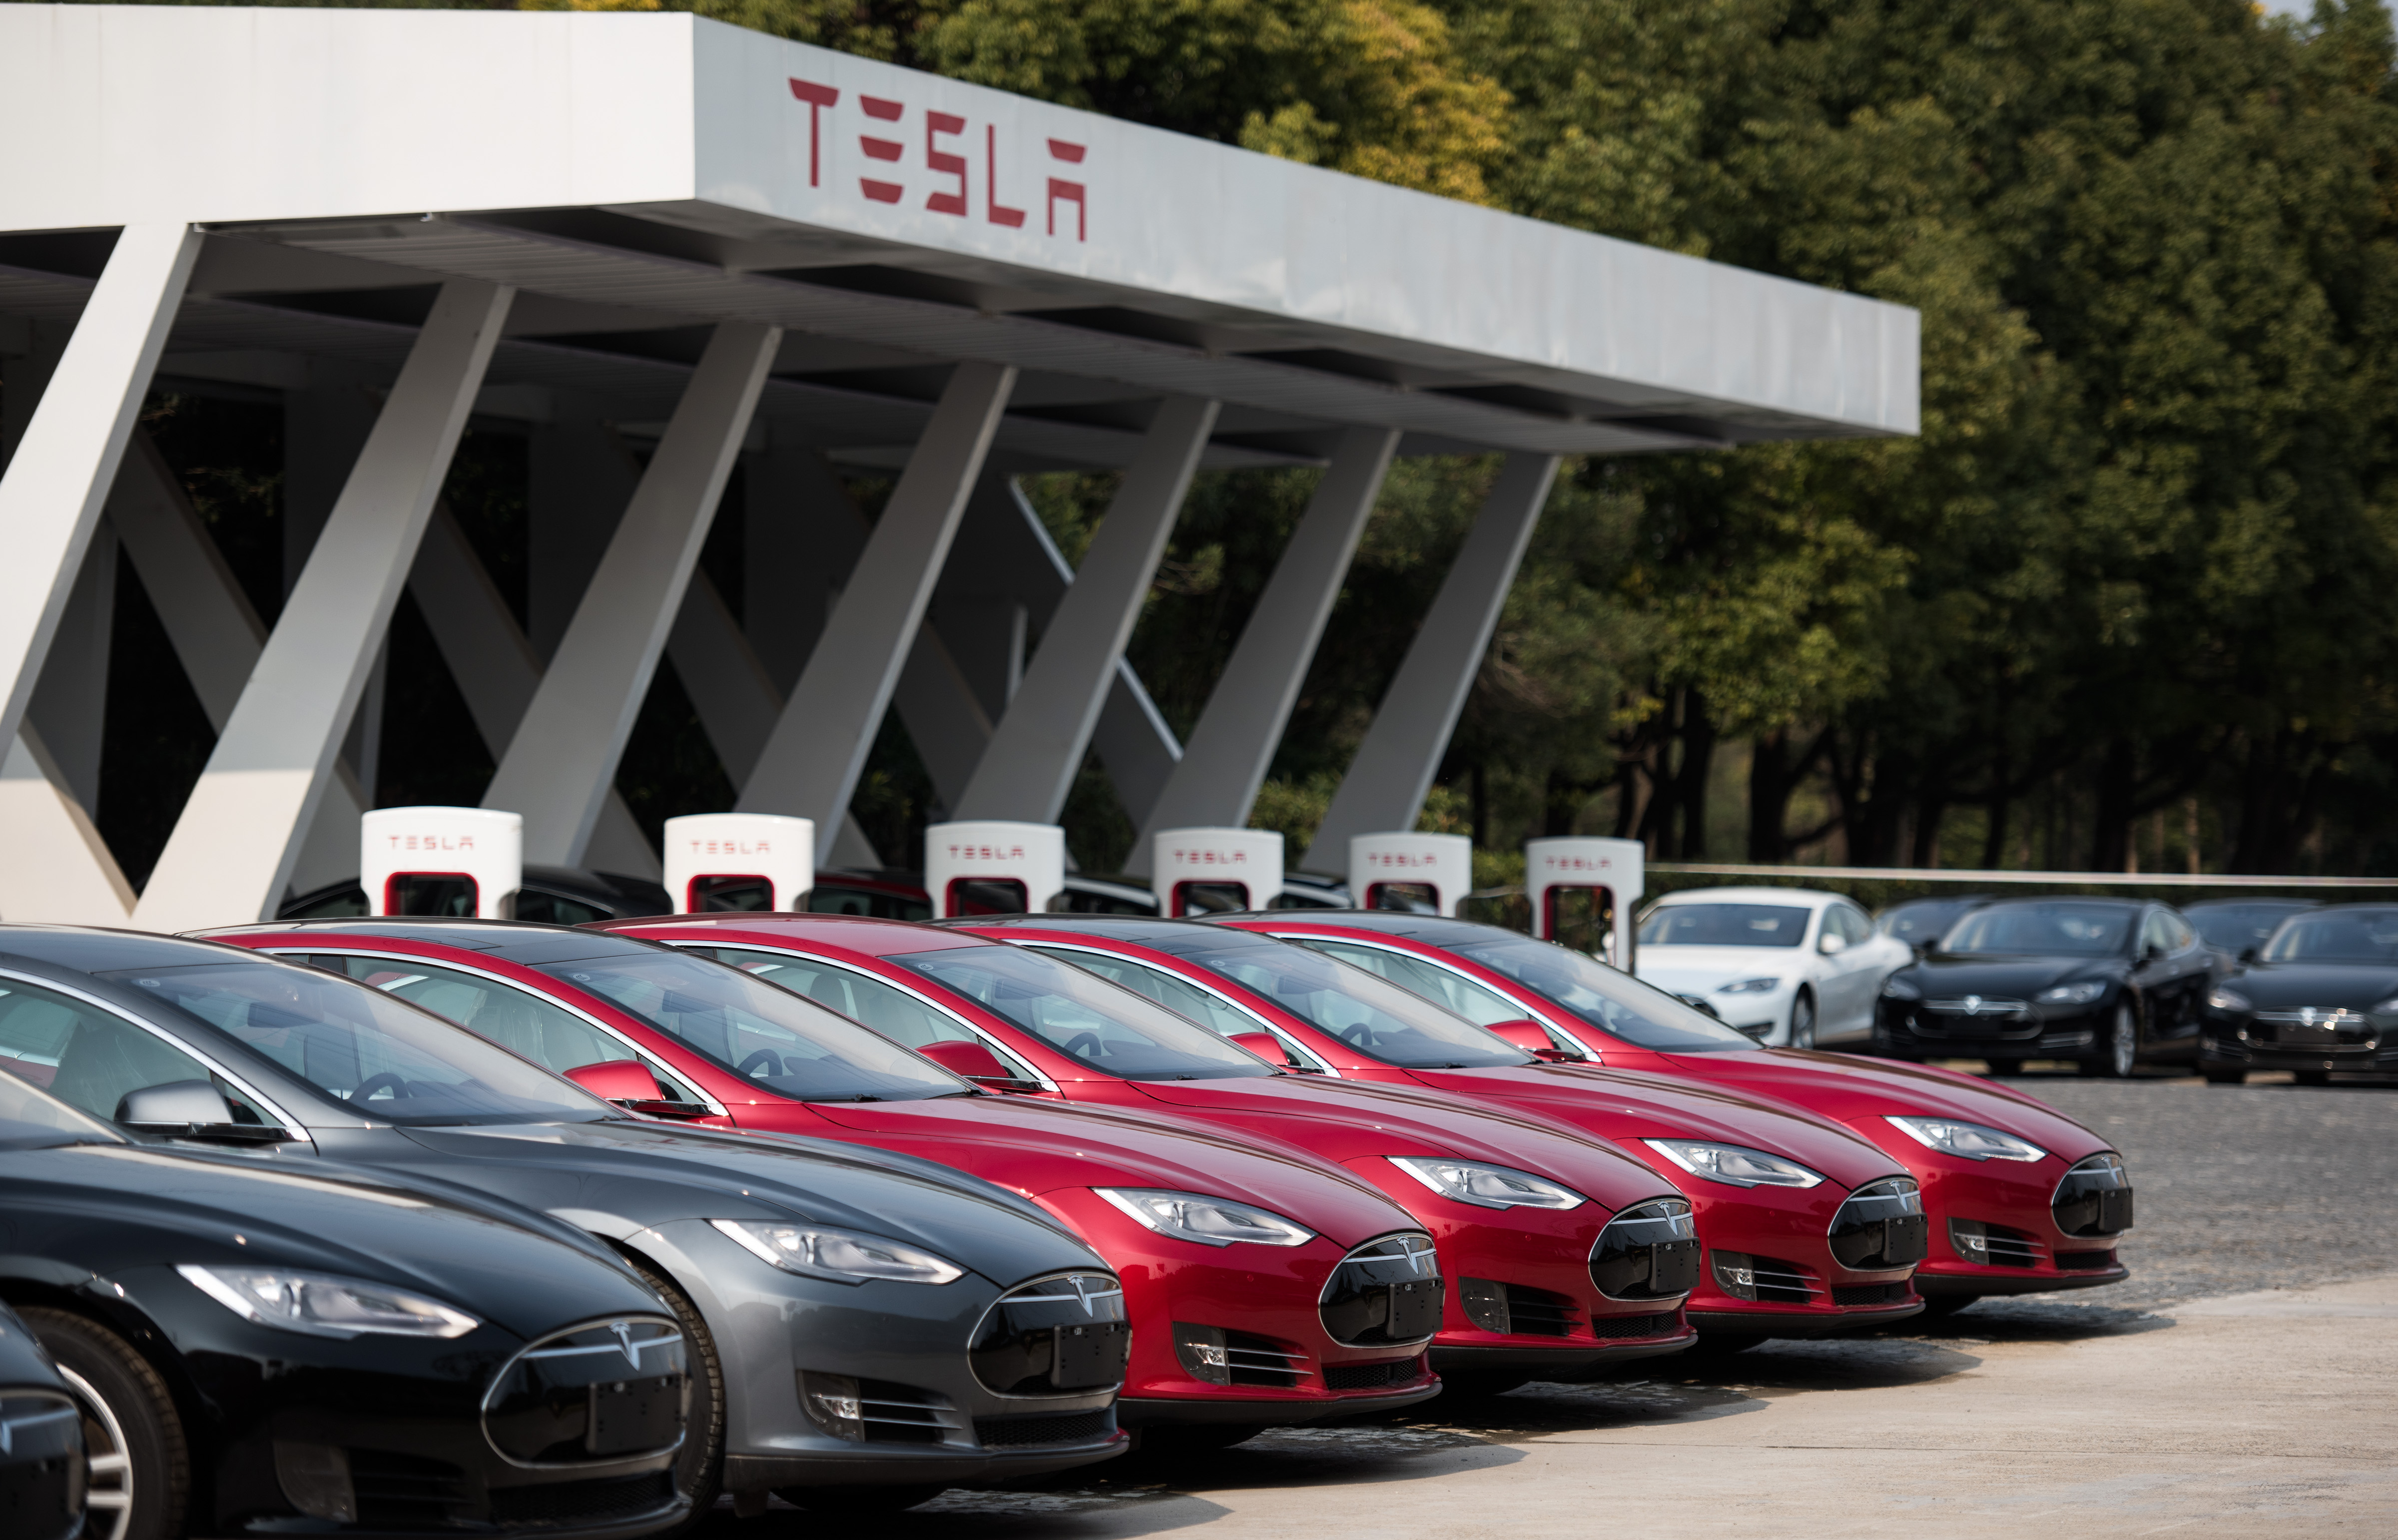 Why Tesla's Planned China Price Hikes Shouldn't Worry